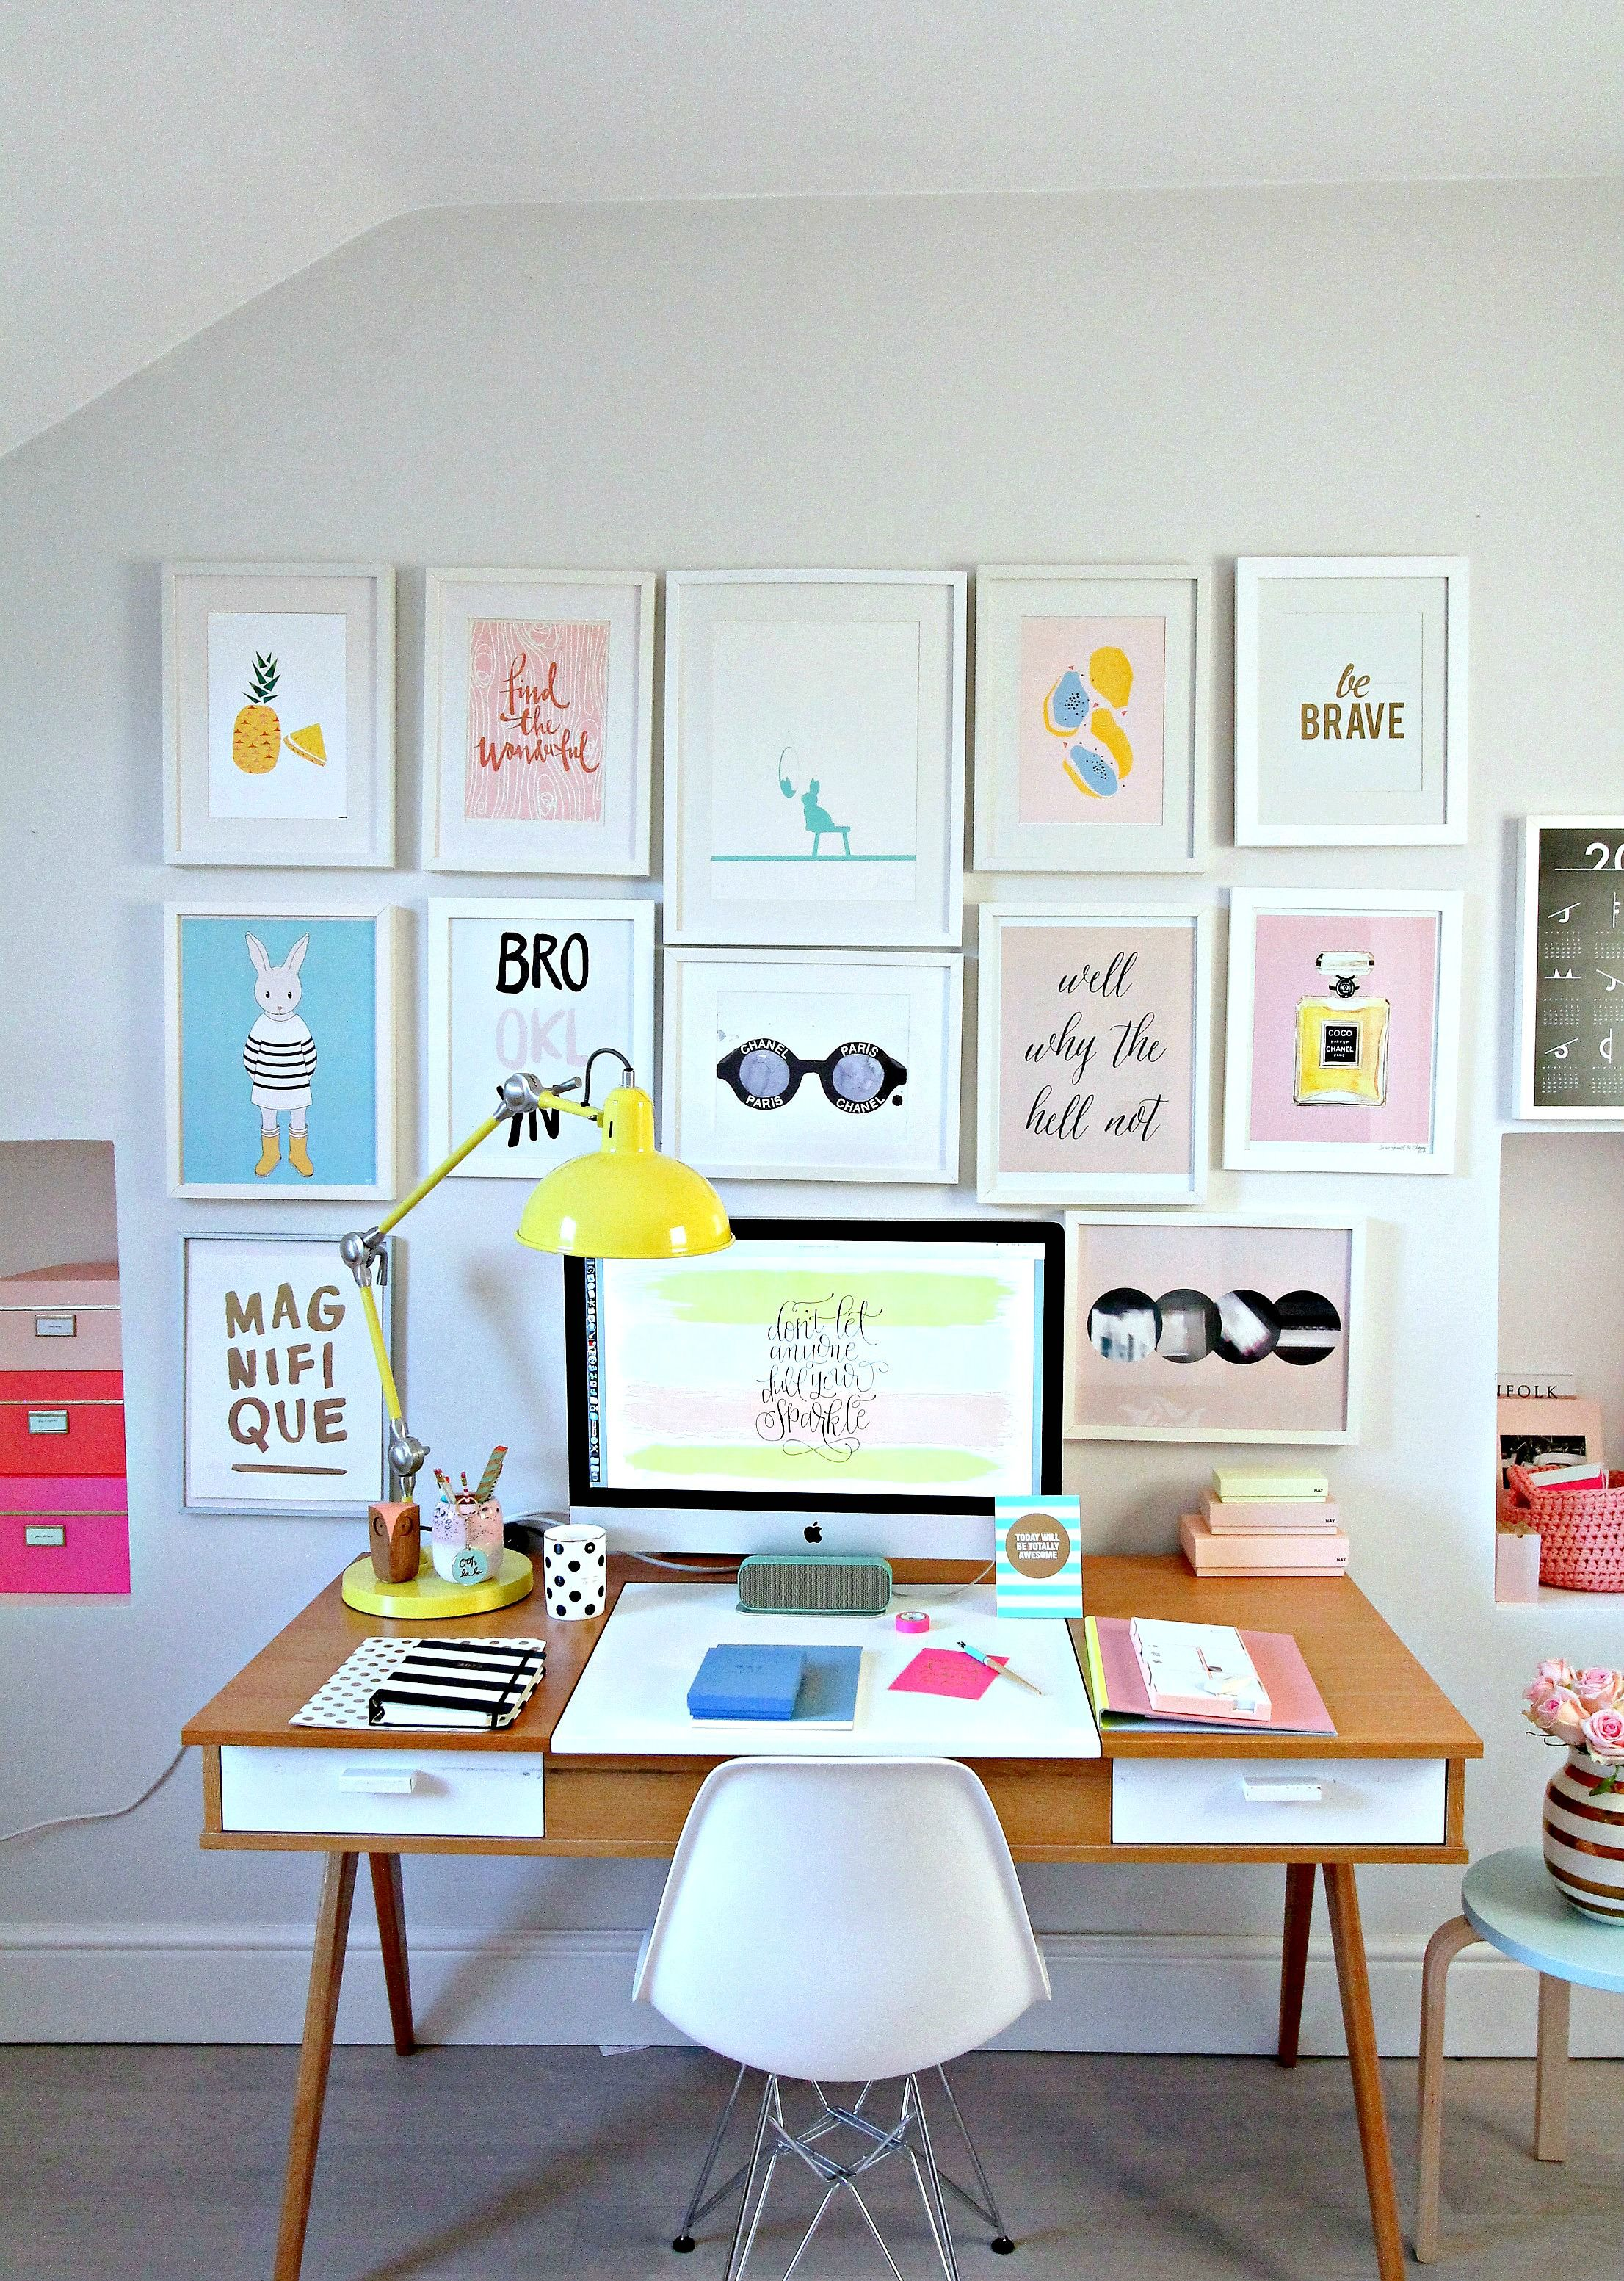 My colourful workplace wall gallery and a collaboration with Pinch Me Moments.